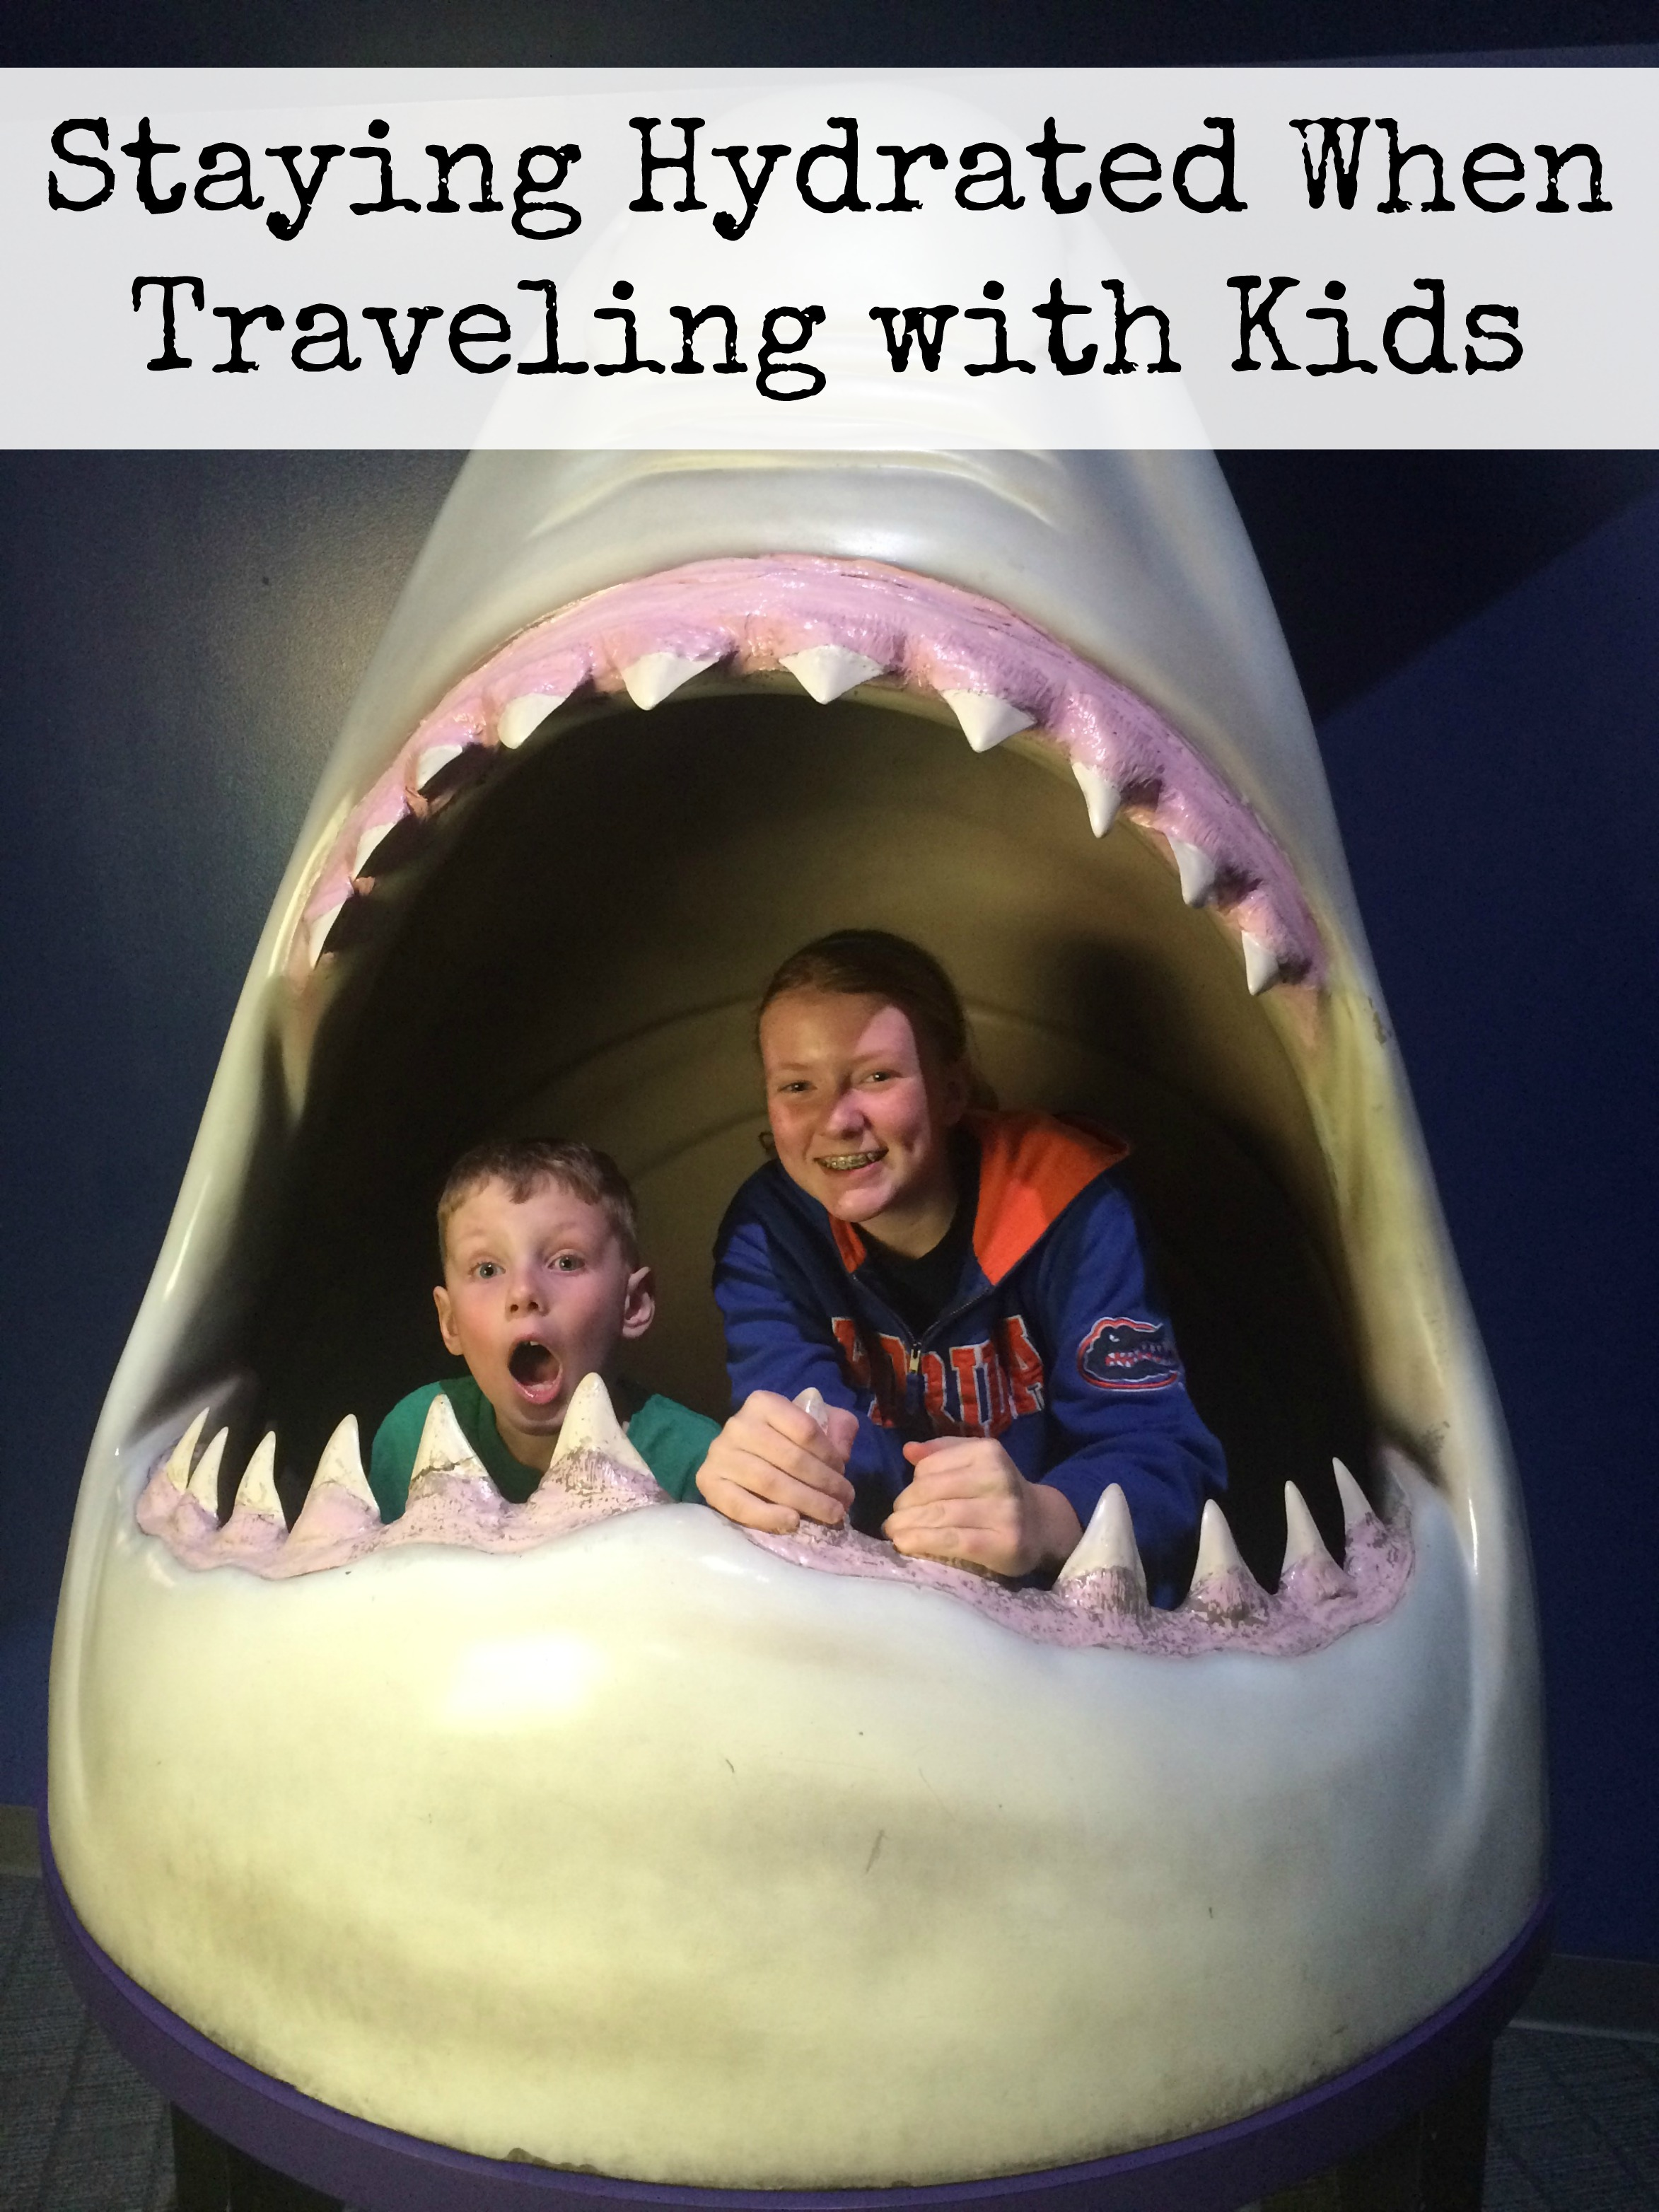 Staying Hydrated When Traveling with Kids